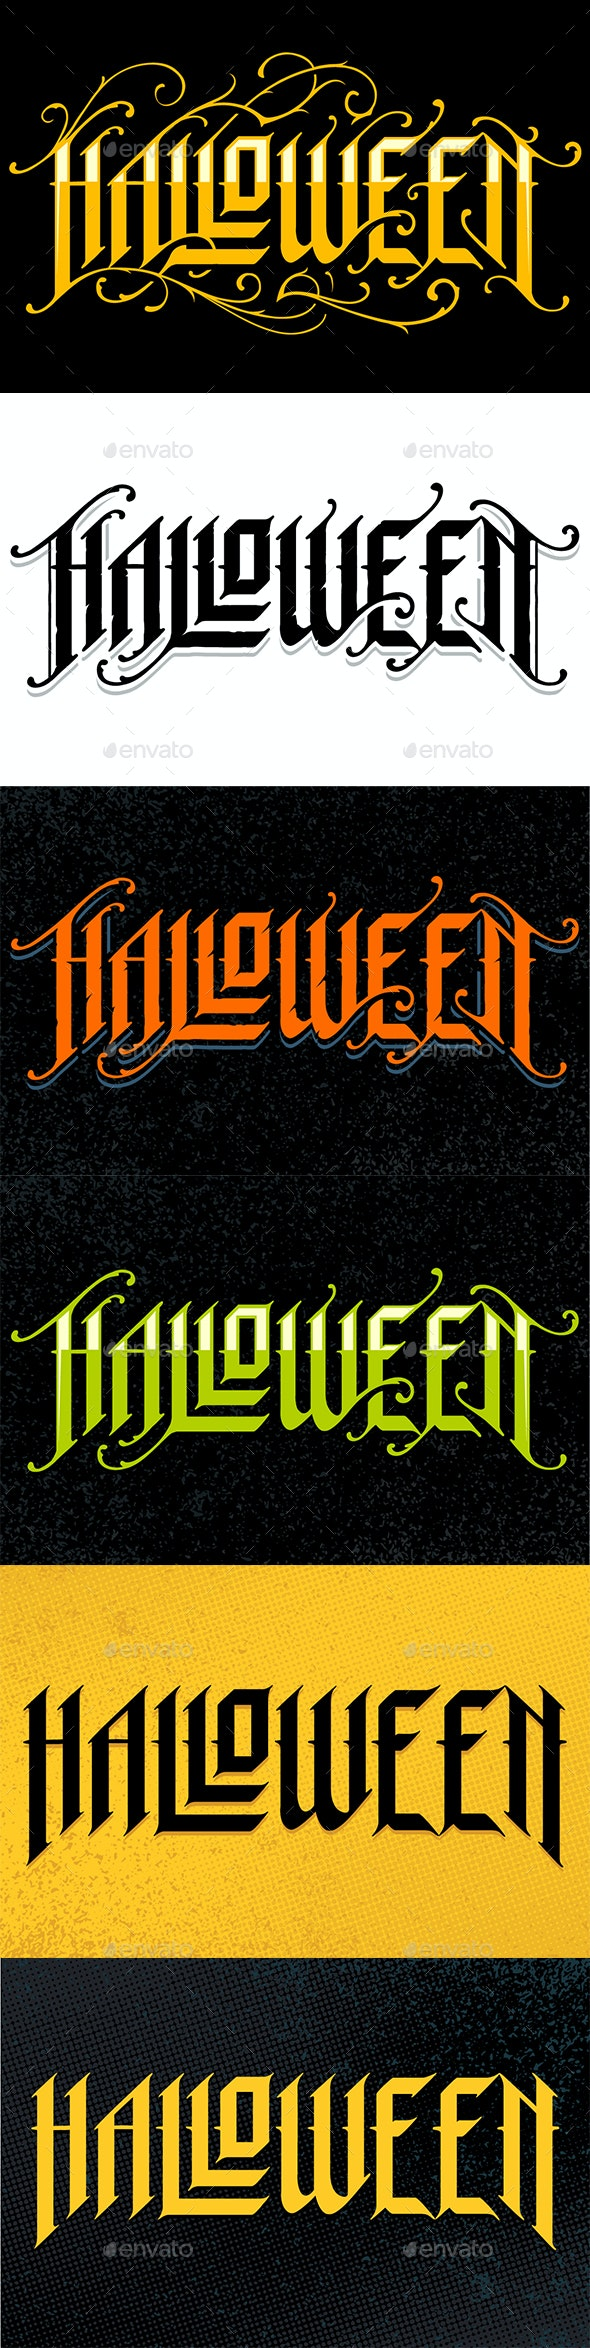 Halloween Gothic Lettering - Halloween Seasons/Holidays